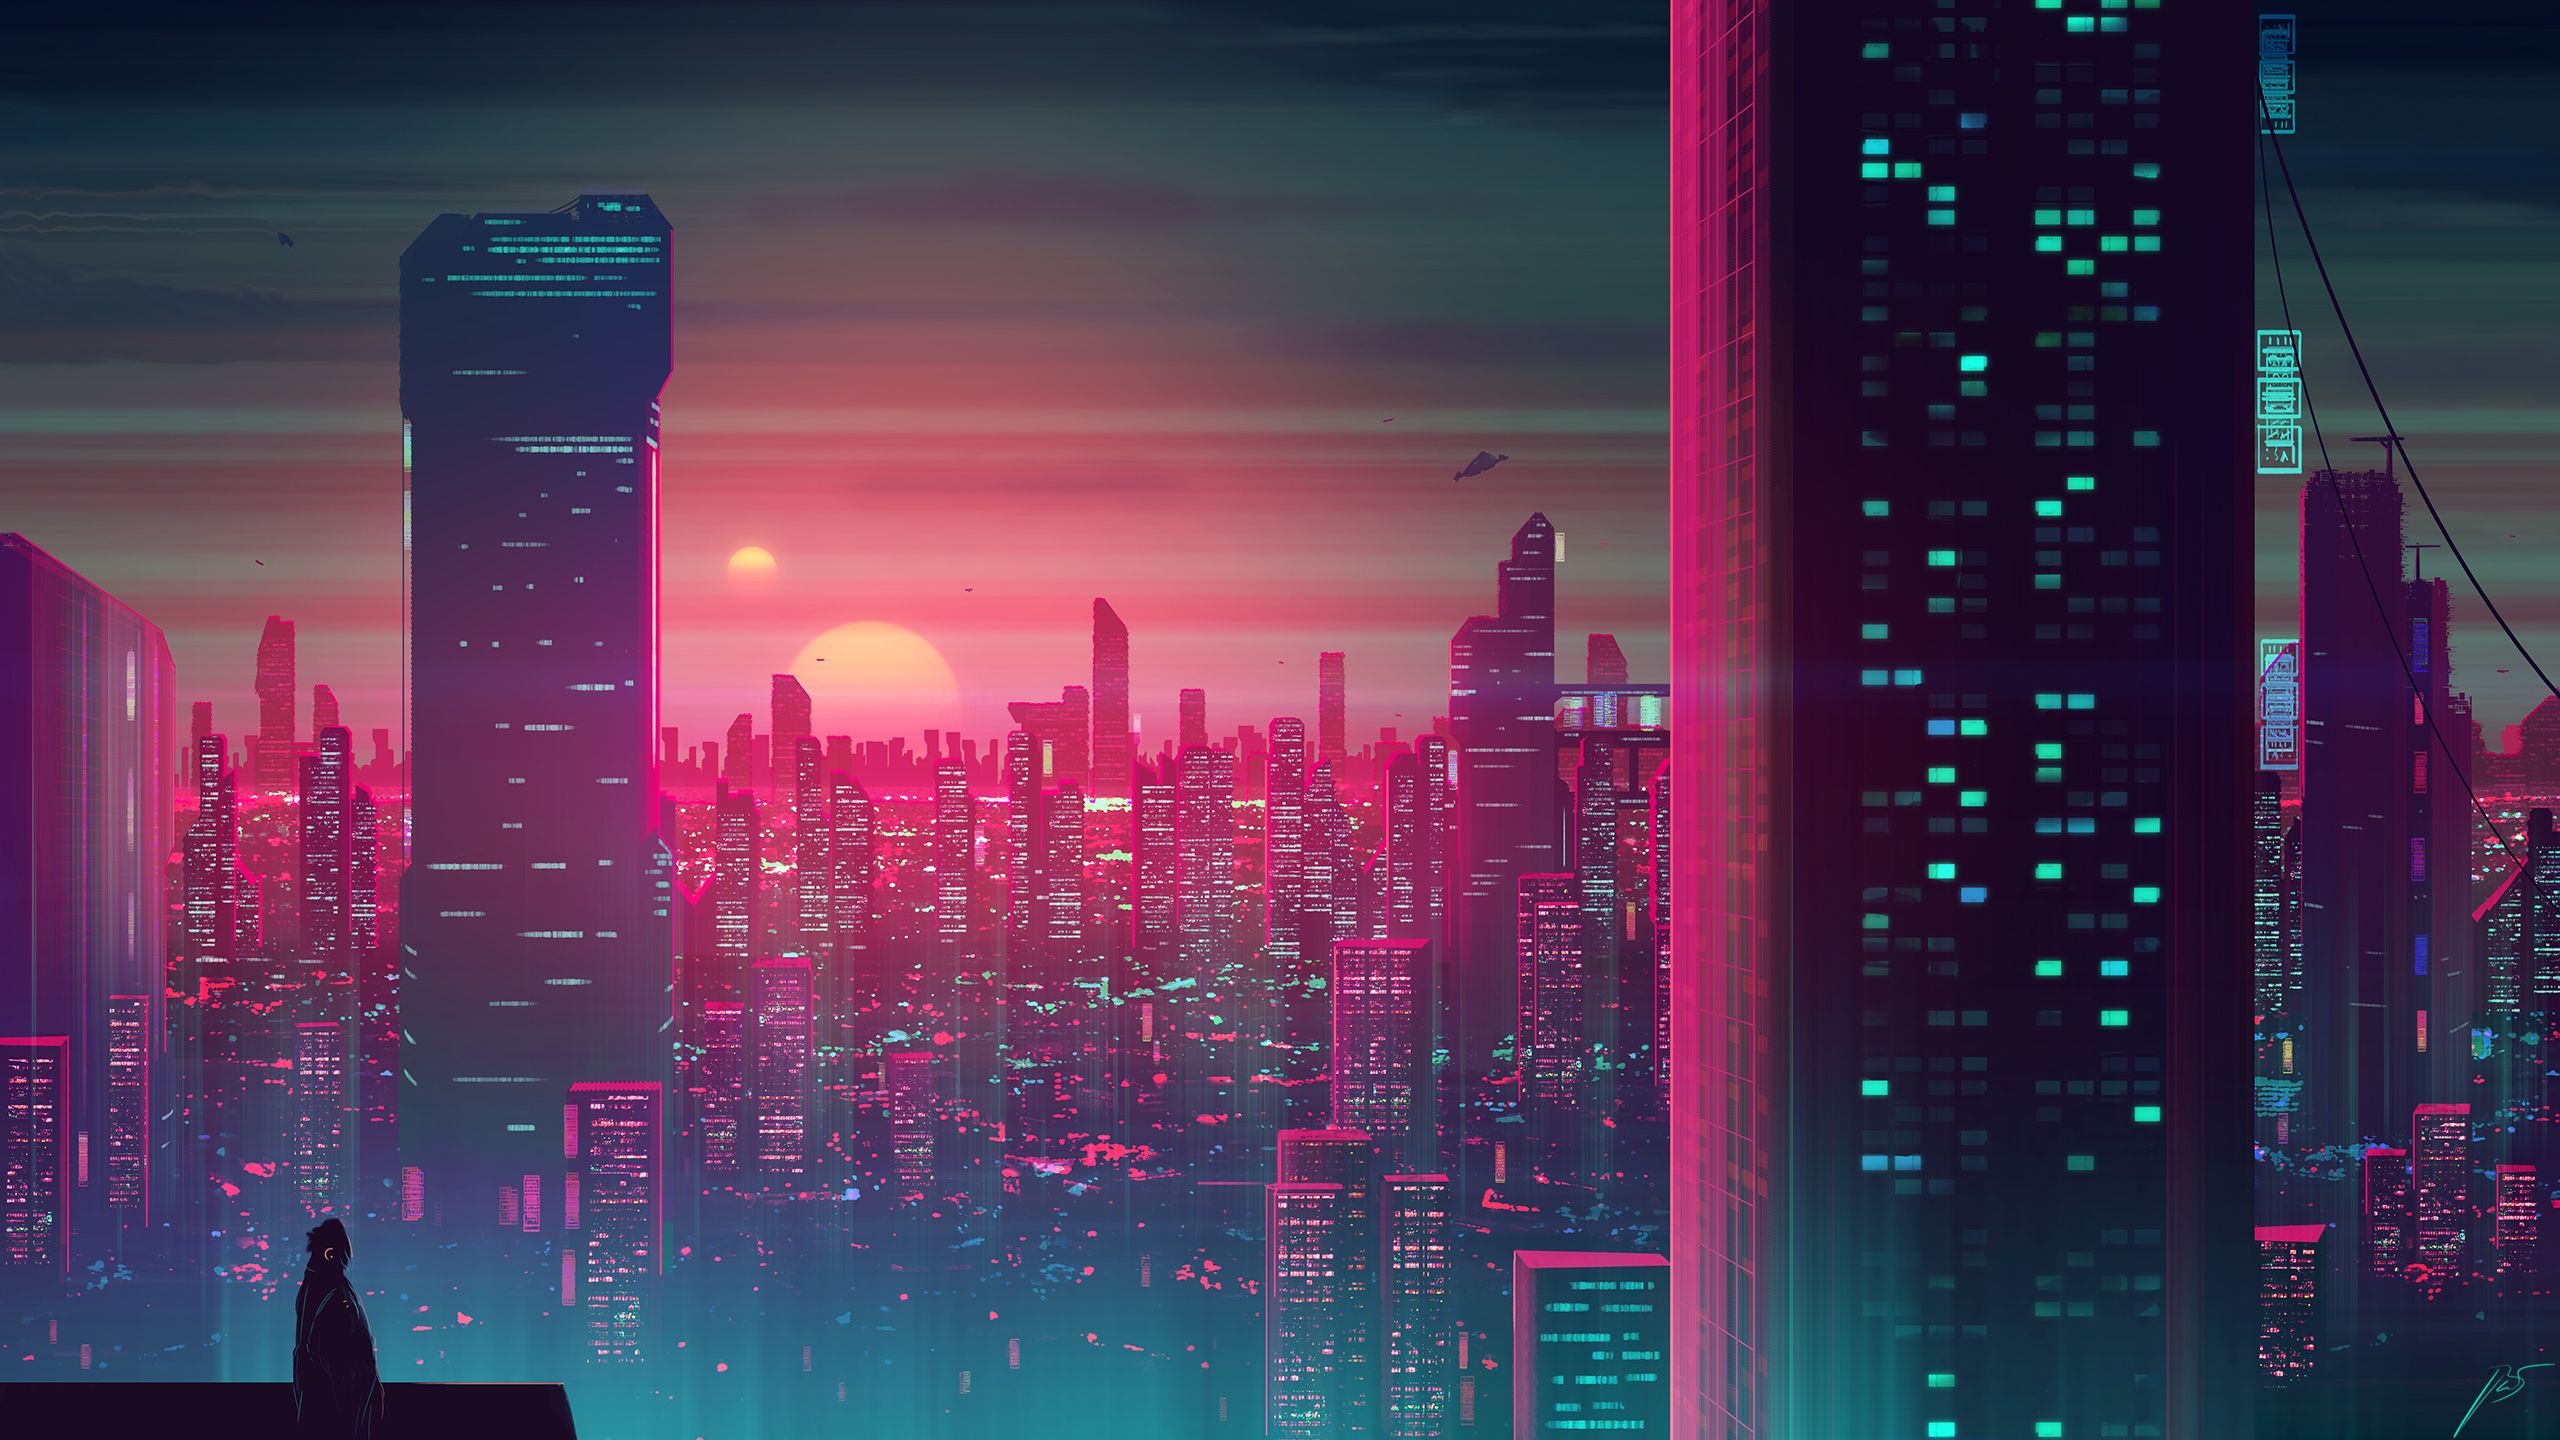 General 2560x1440 futuristic science fiction skyscraper JoeyJazz